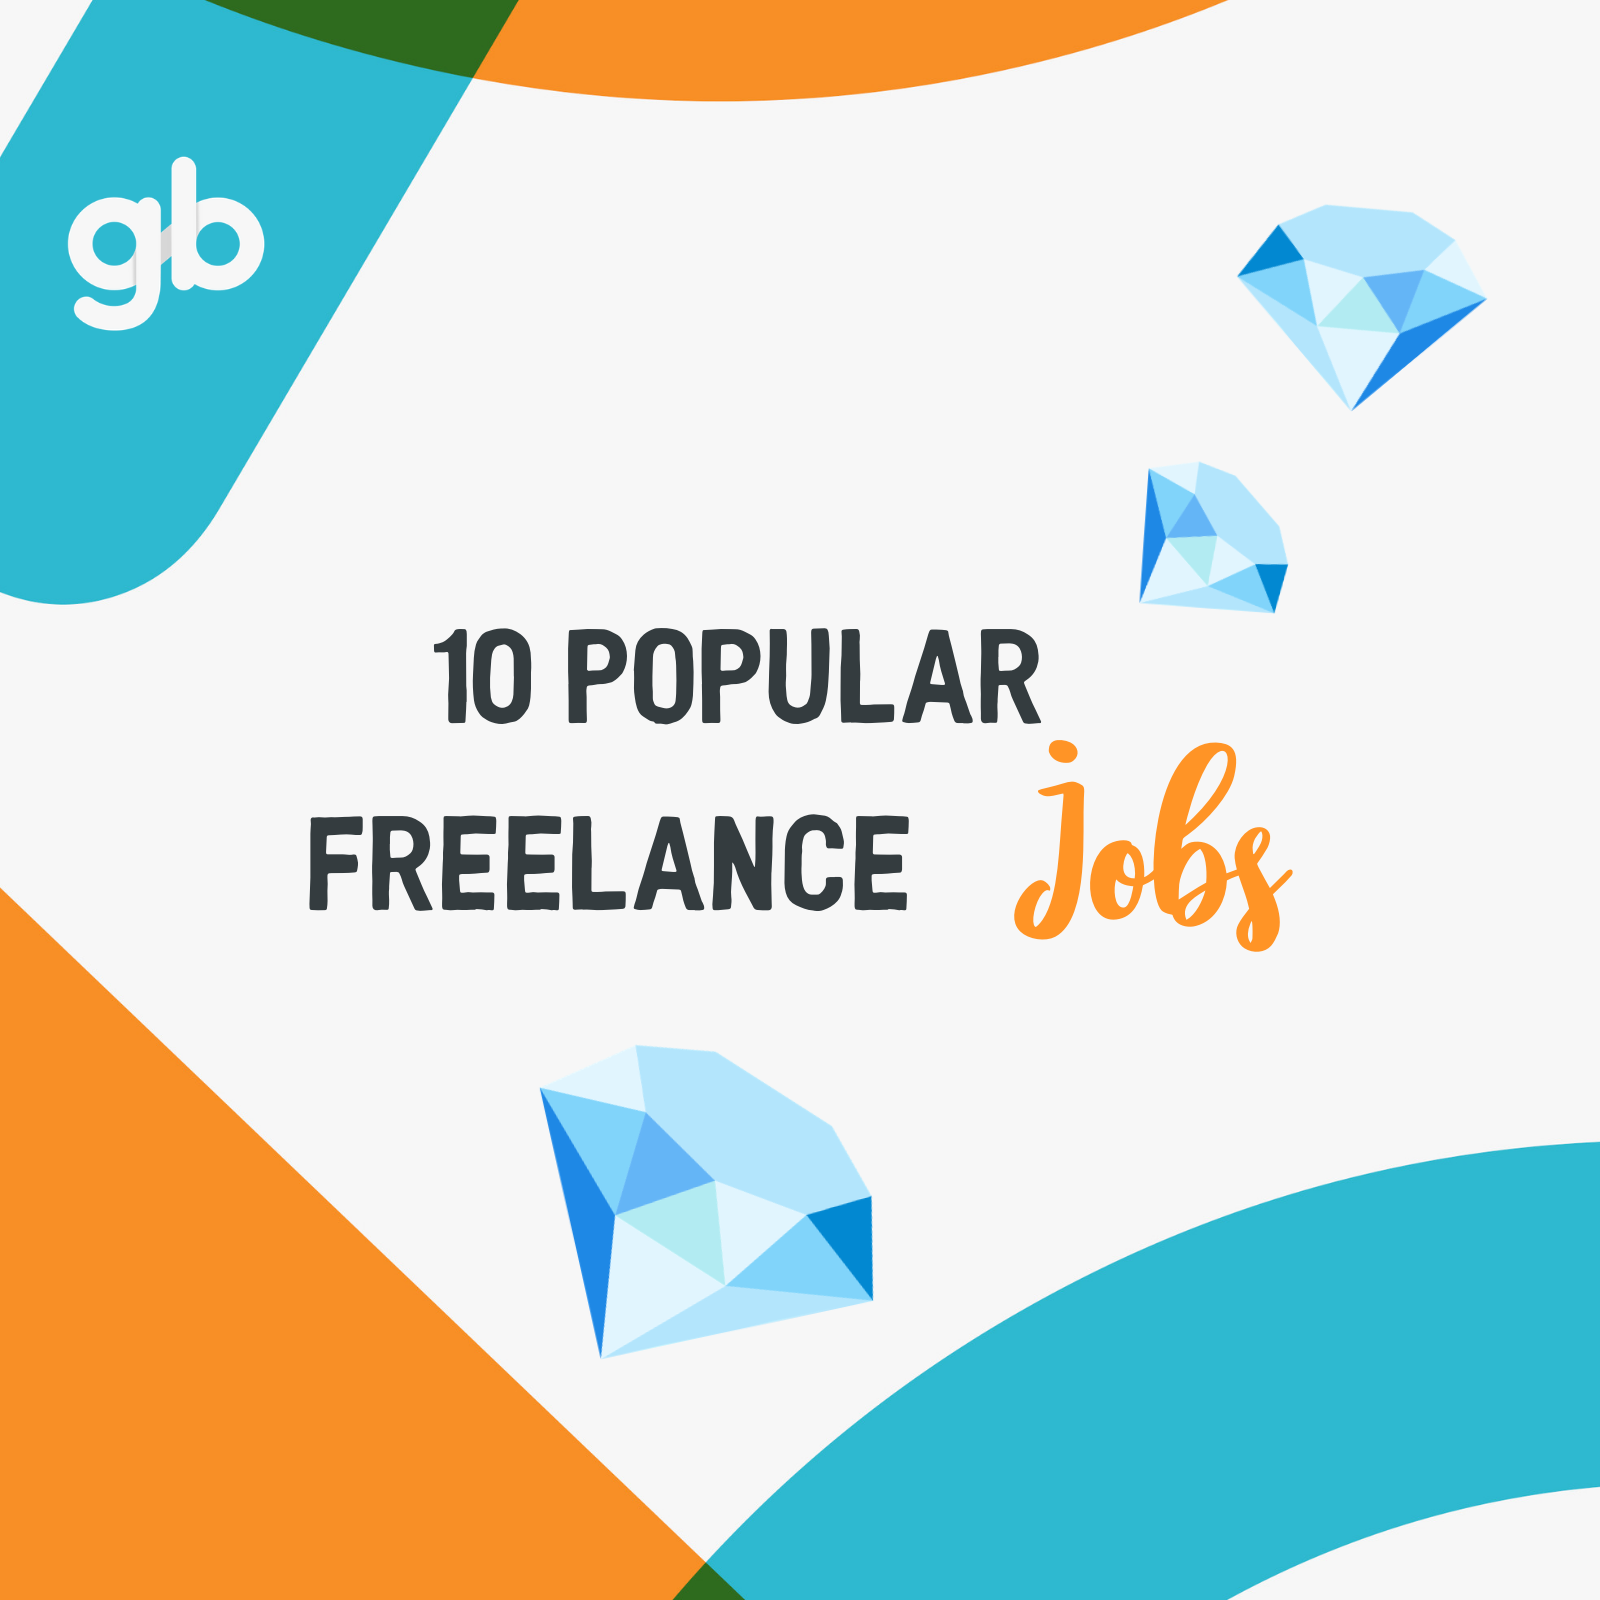 #4. Not sure what services or skills specialize in? Here are 10 in-demand freelance careers and the average pay range for each. -